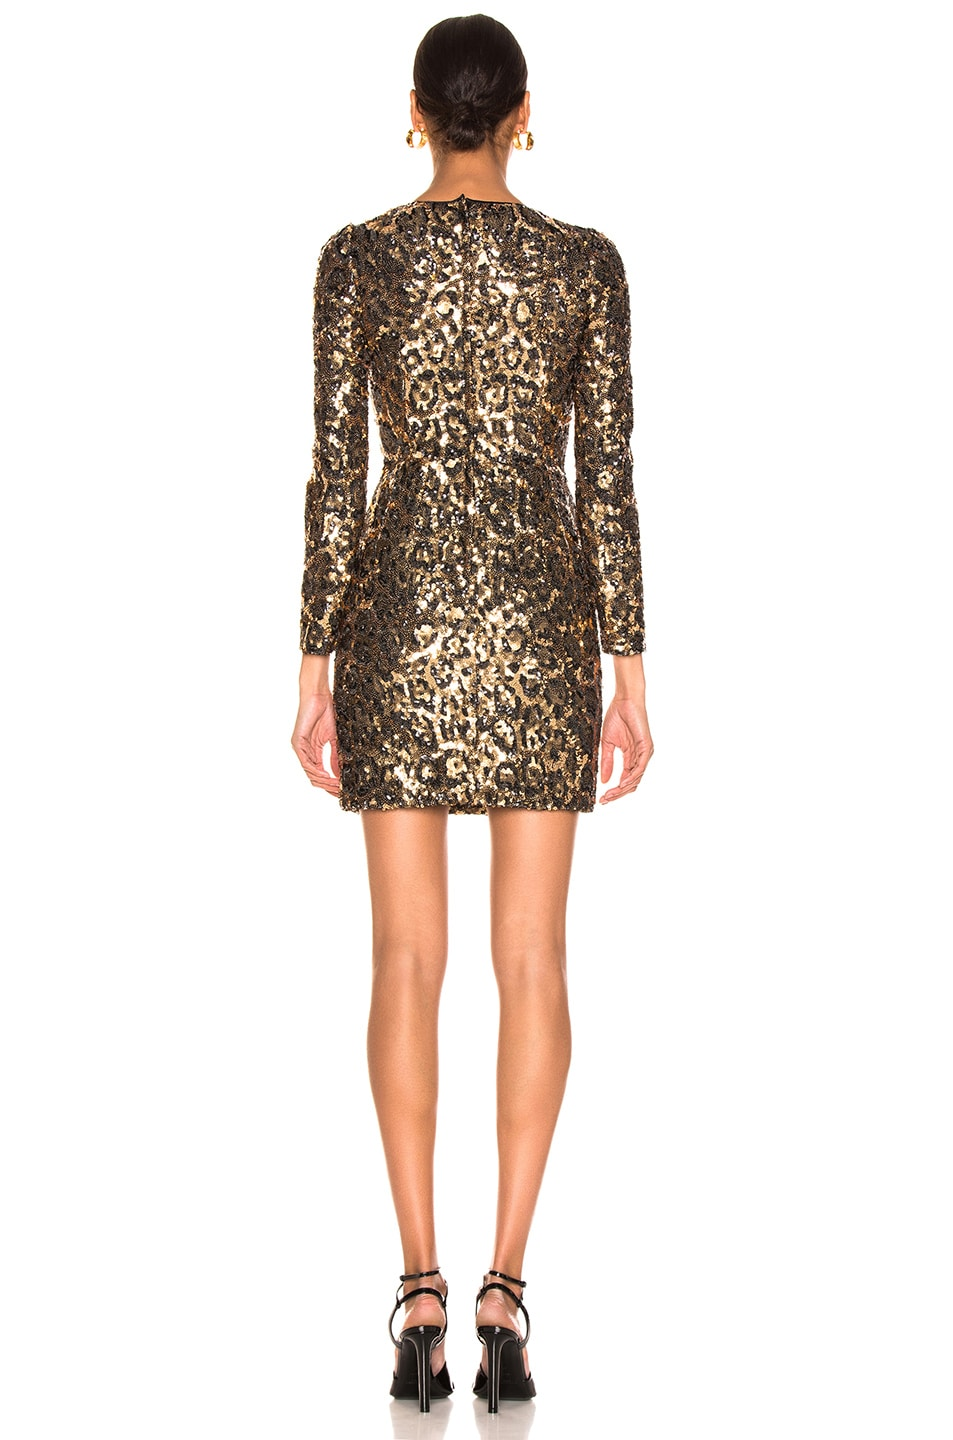 Image 3 of Dolce & Gabbana Leo Print Sequin Long Sleeve Dress in Cheetah